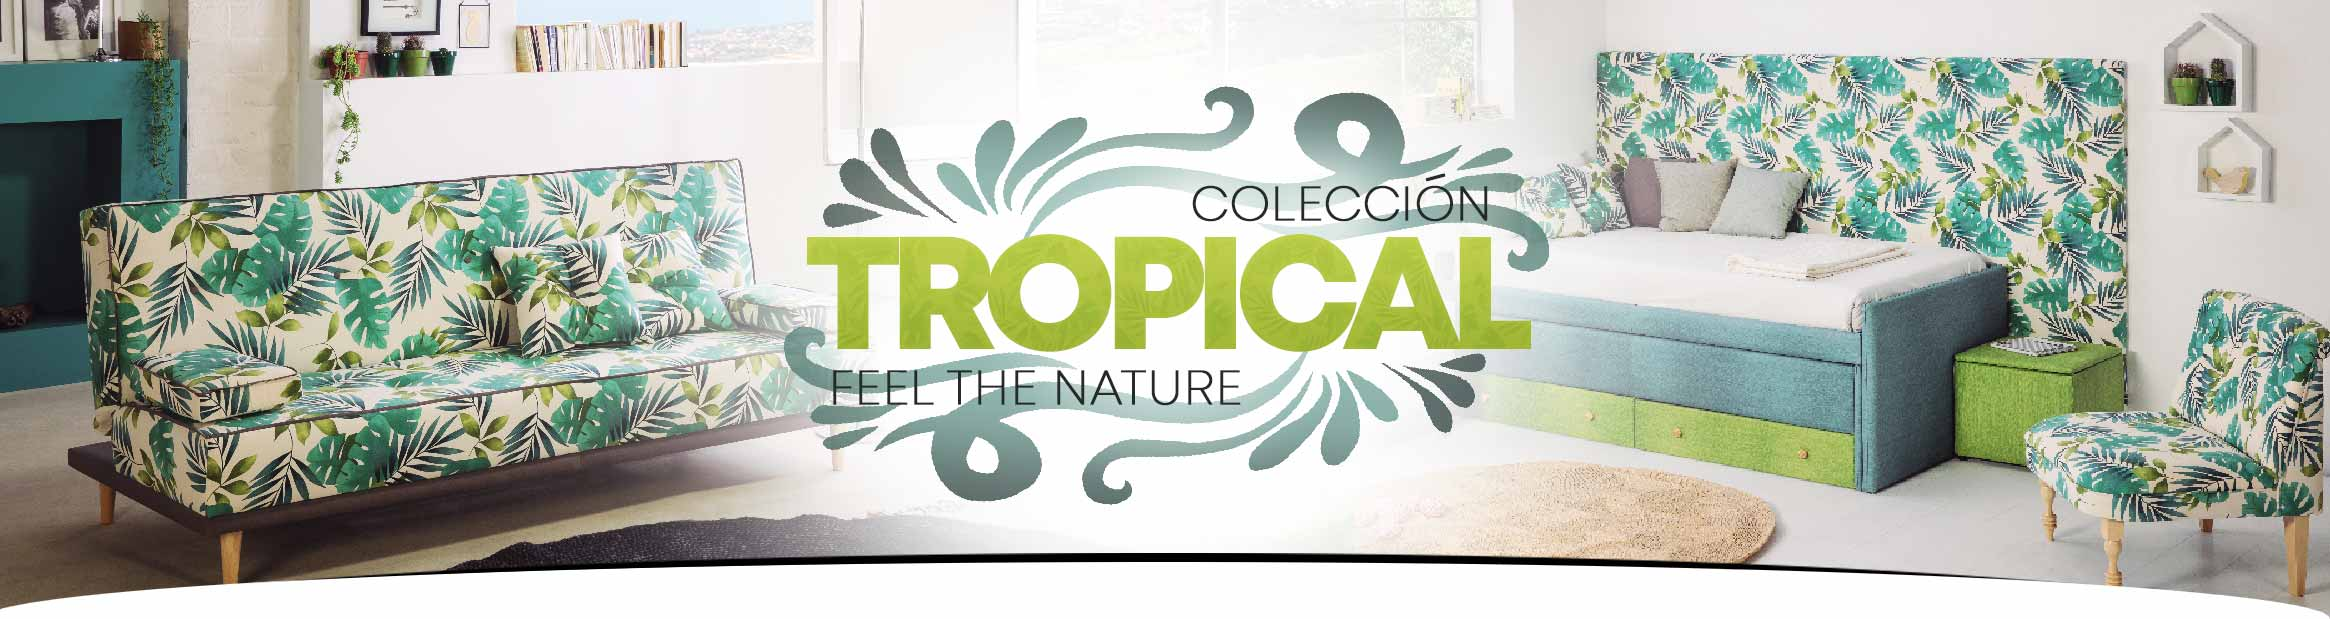 Colección Tropical - Feel the nature